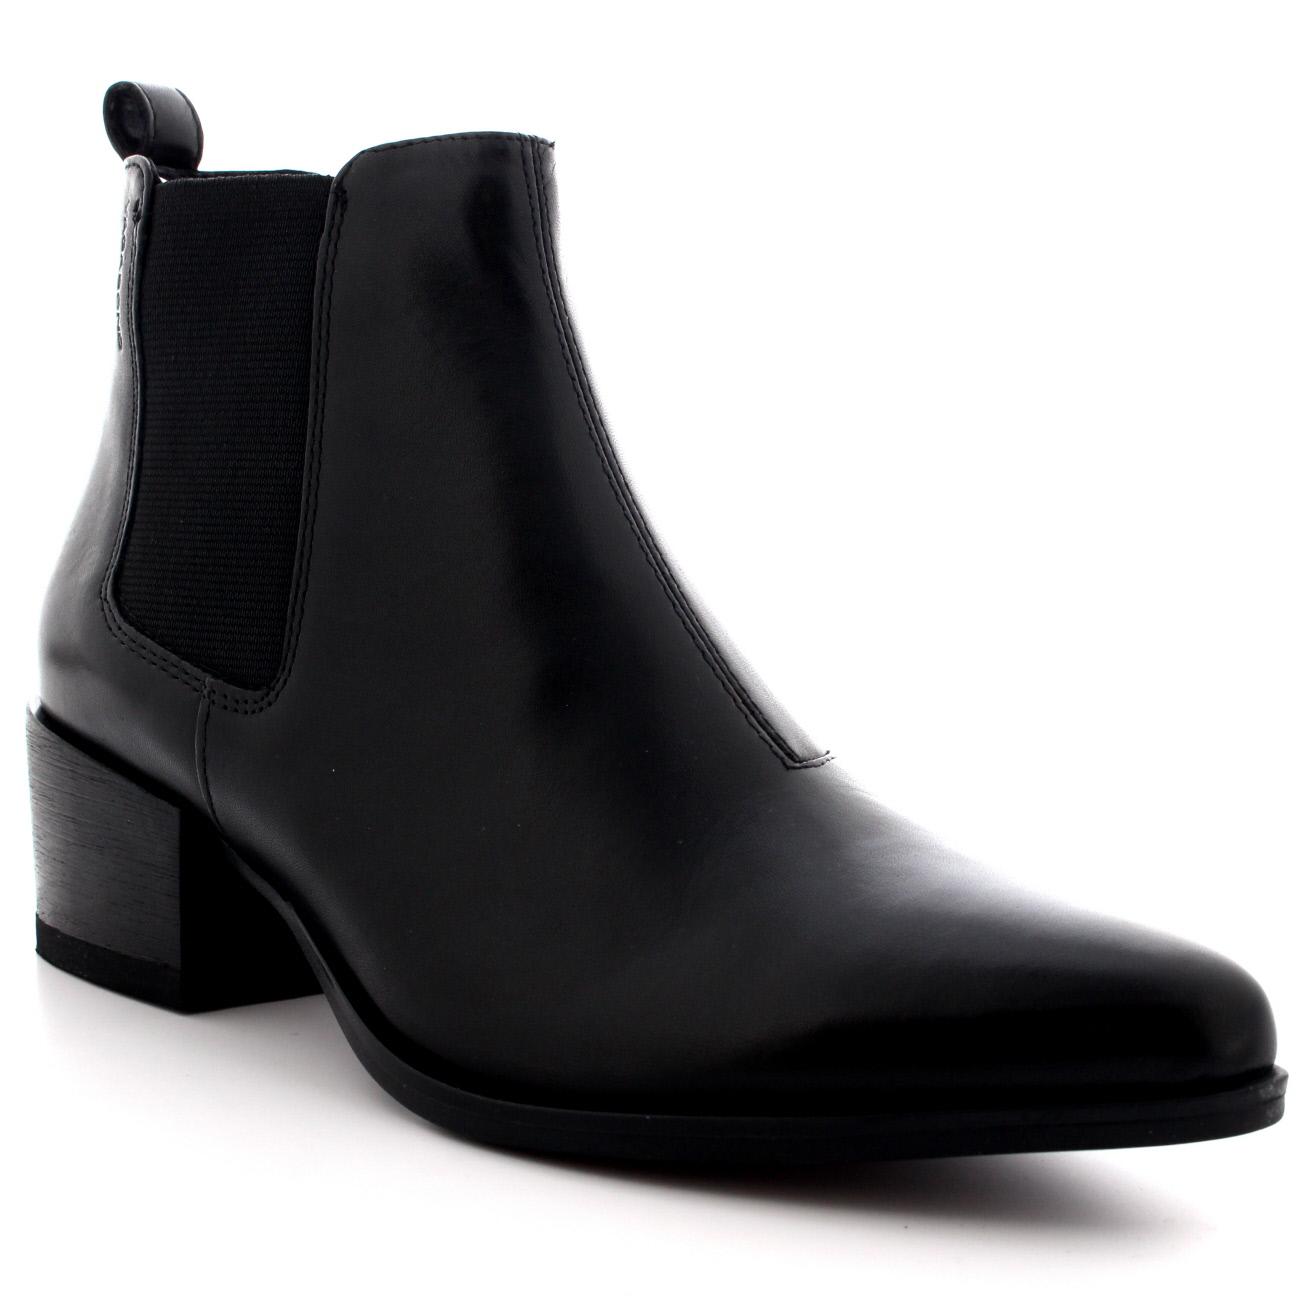 womens vagabond marja work leather shoes casual pointed toe ankle boot us 5 5 10 ebay. Black Bedroom Furniture Sets. Home Design Ideas